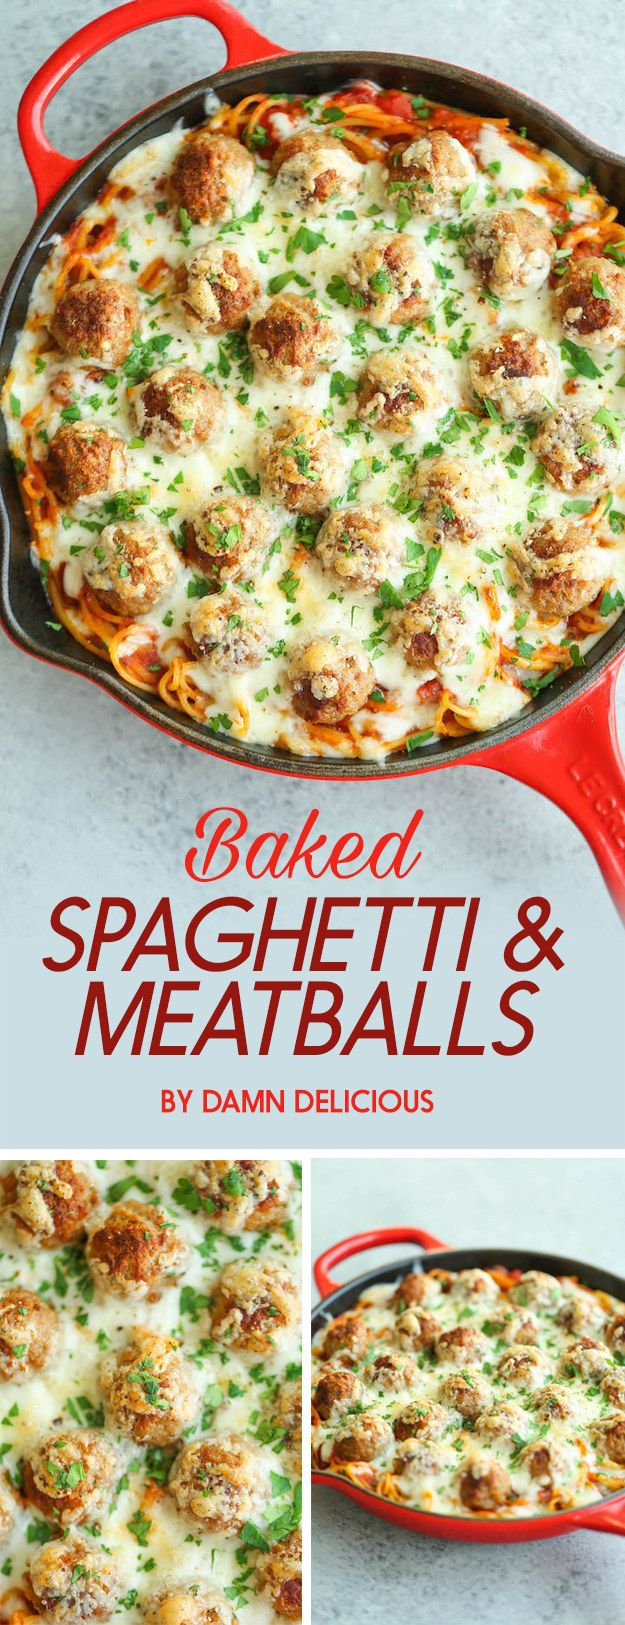 best ideas about Spaghetti and meatballs on Pinterest | Best meatballs ...